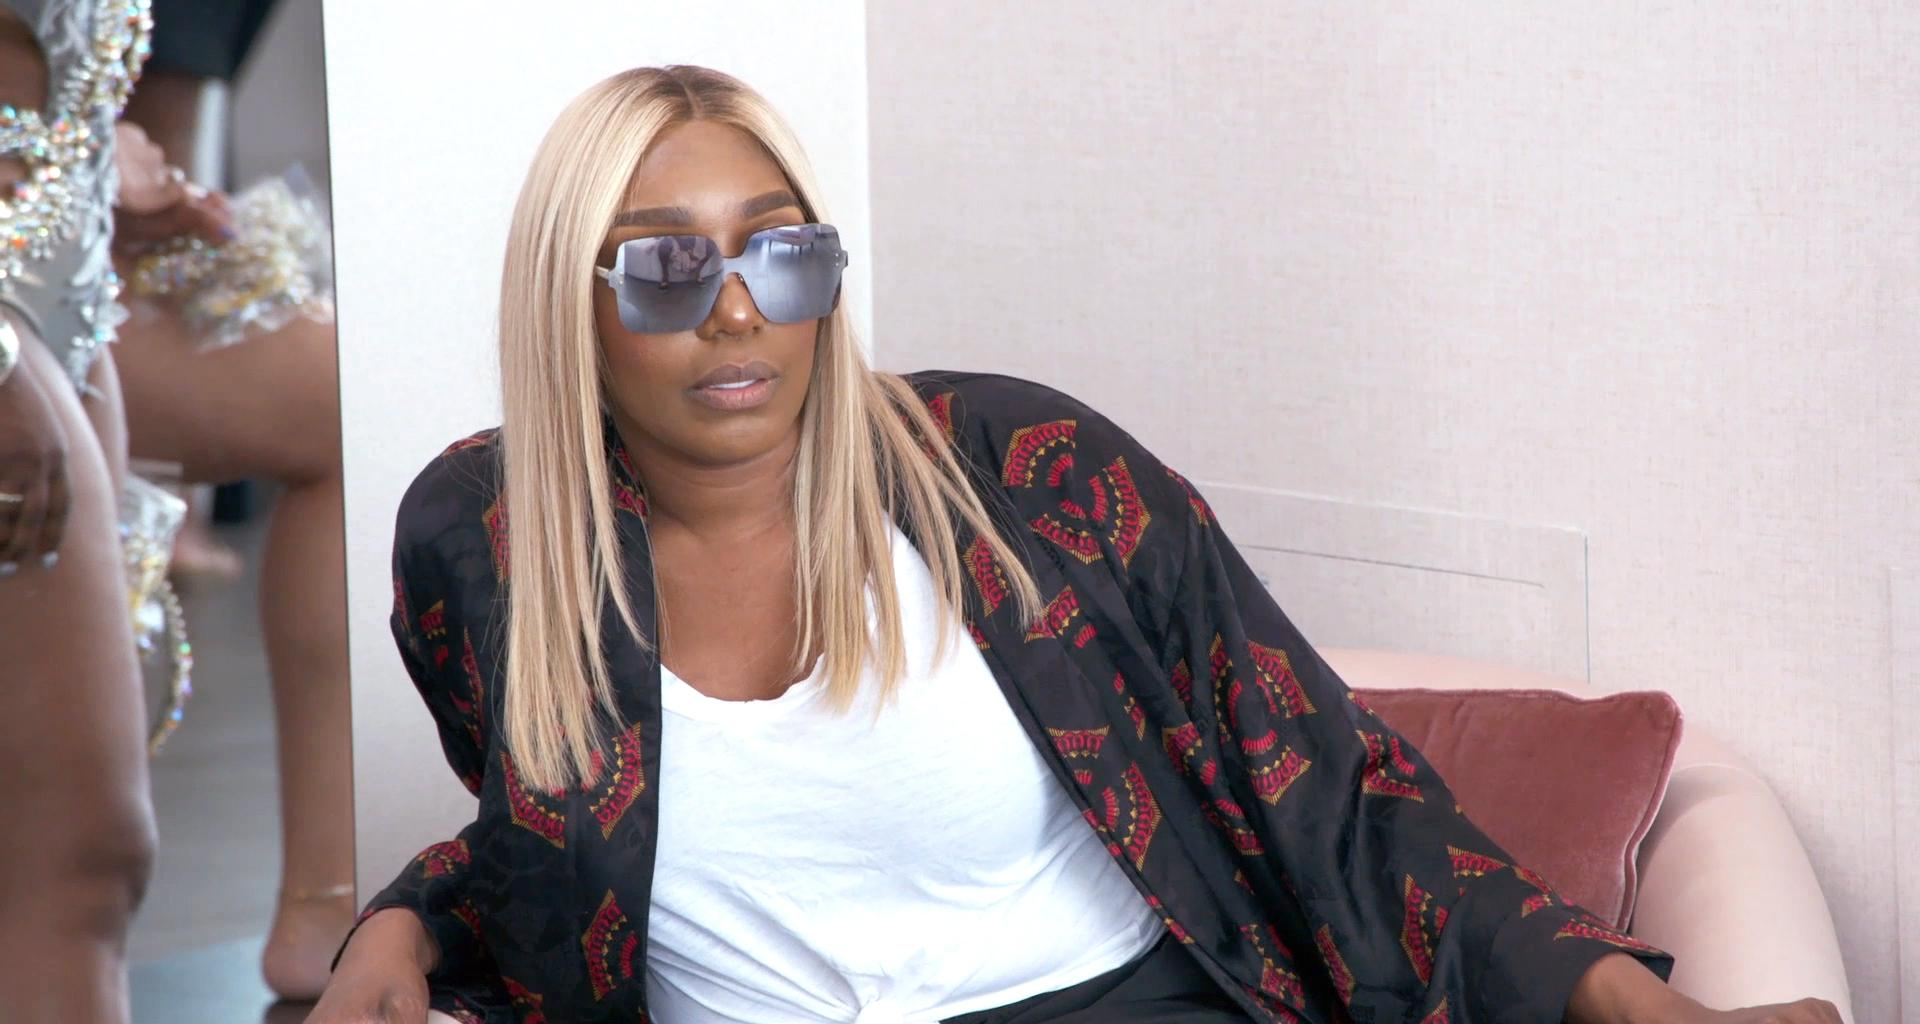 NeNe Leakes Is Looking For Influencers To Promote Various Products - Here's Her Message